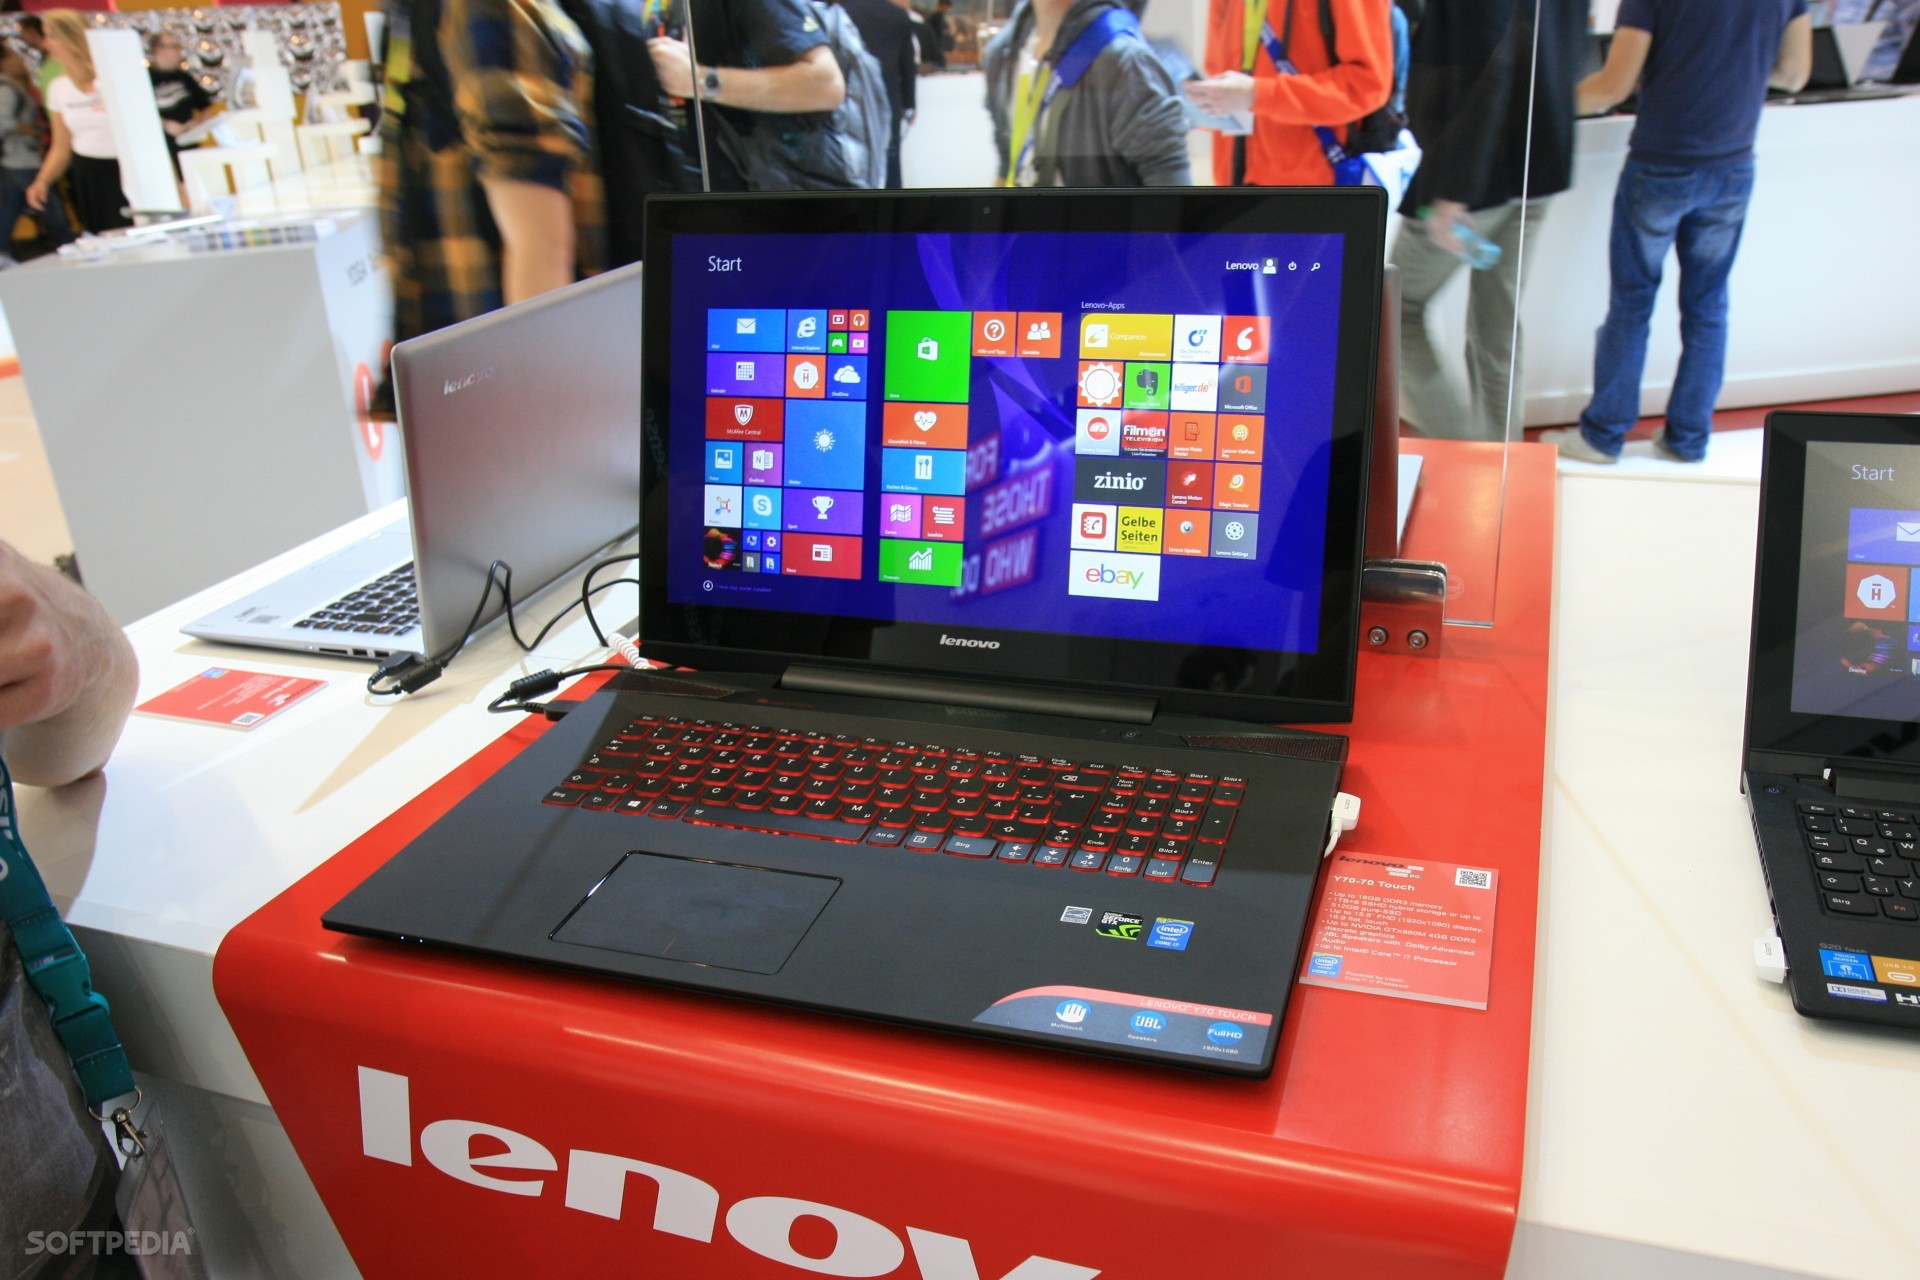 Hands-On-Lenovo-IdeaPad-Y70-Gaming-Laptop-with-Touch-Screen-457906-2